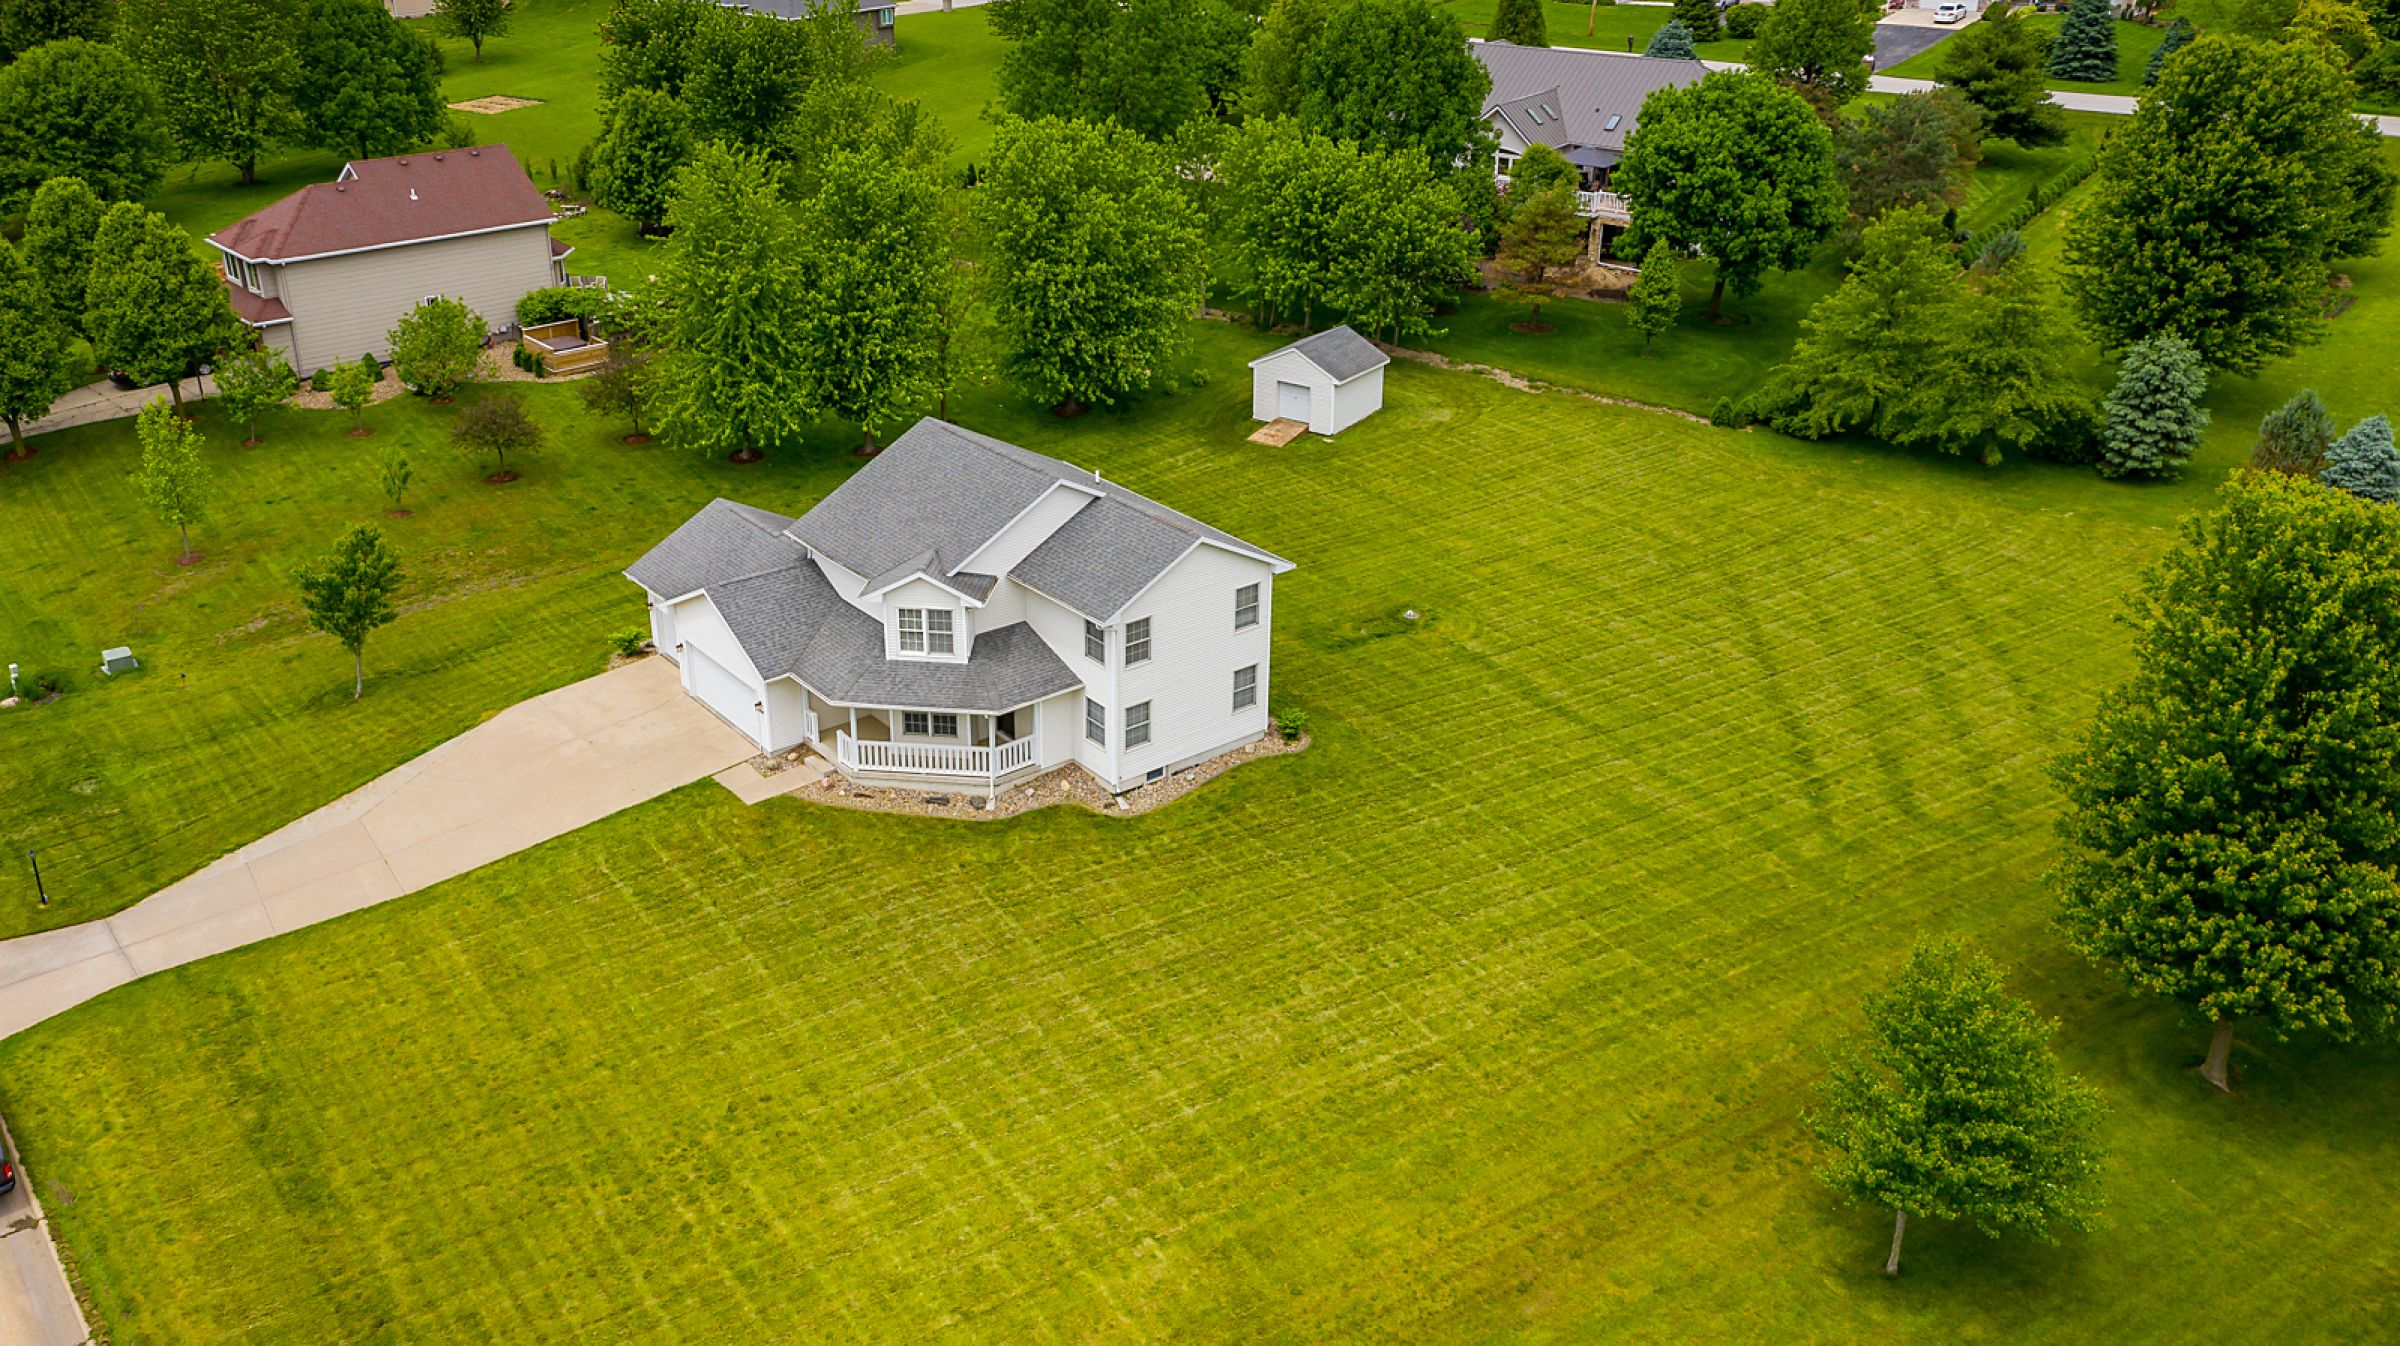 residential-warren-county-iowa-1-acres-listing-number-14999-1-2020-05-29-130356.jpg